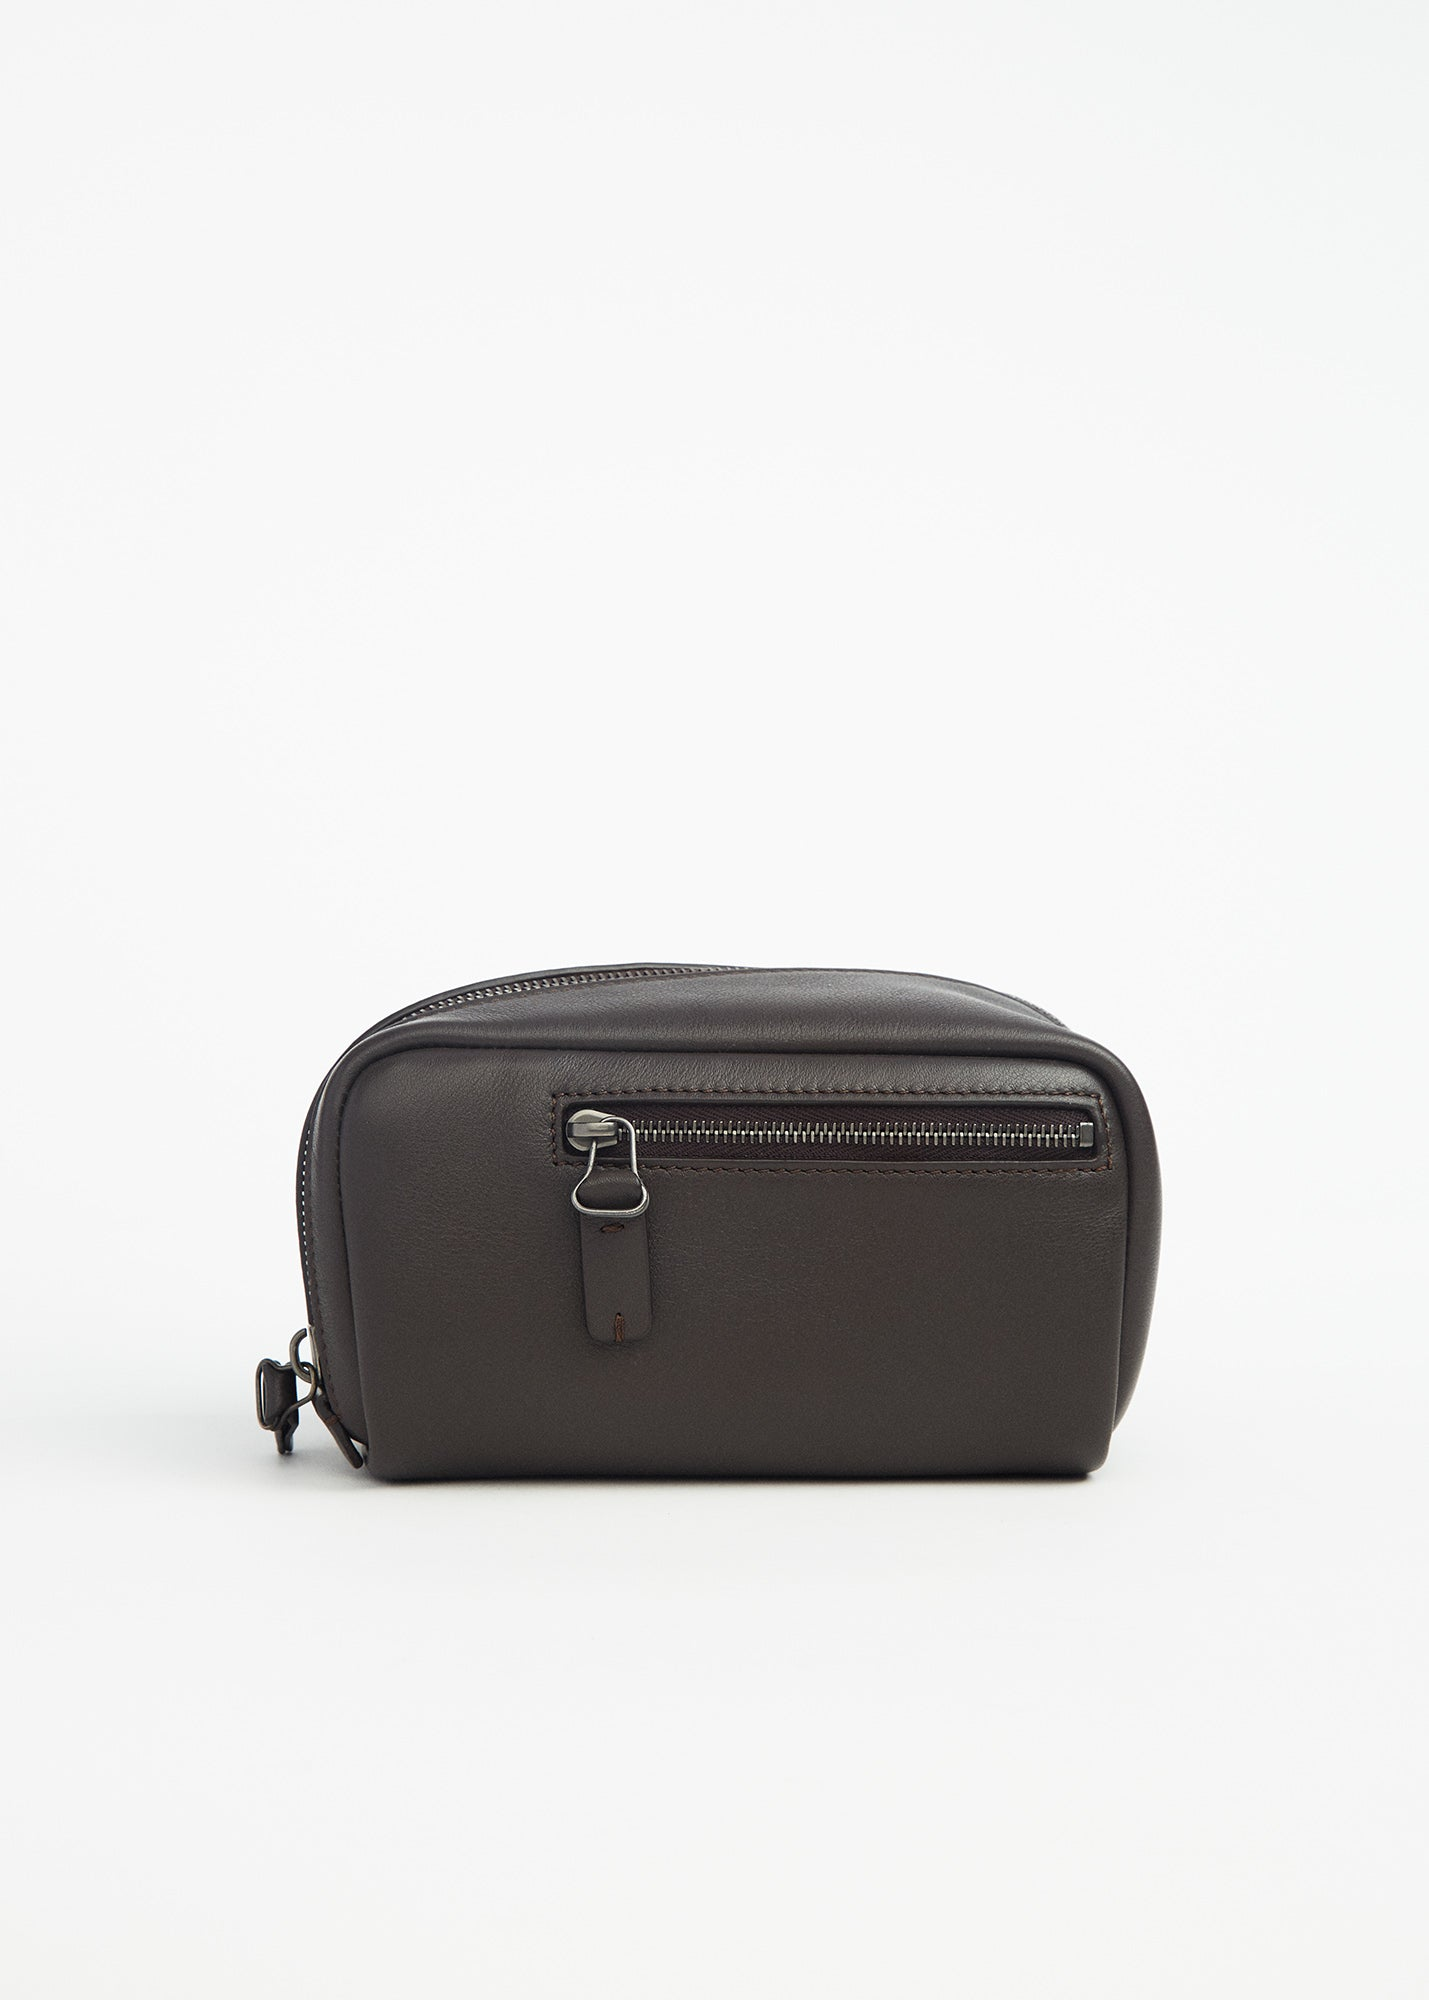 17 Travel Case Dark Brown